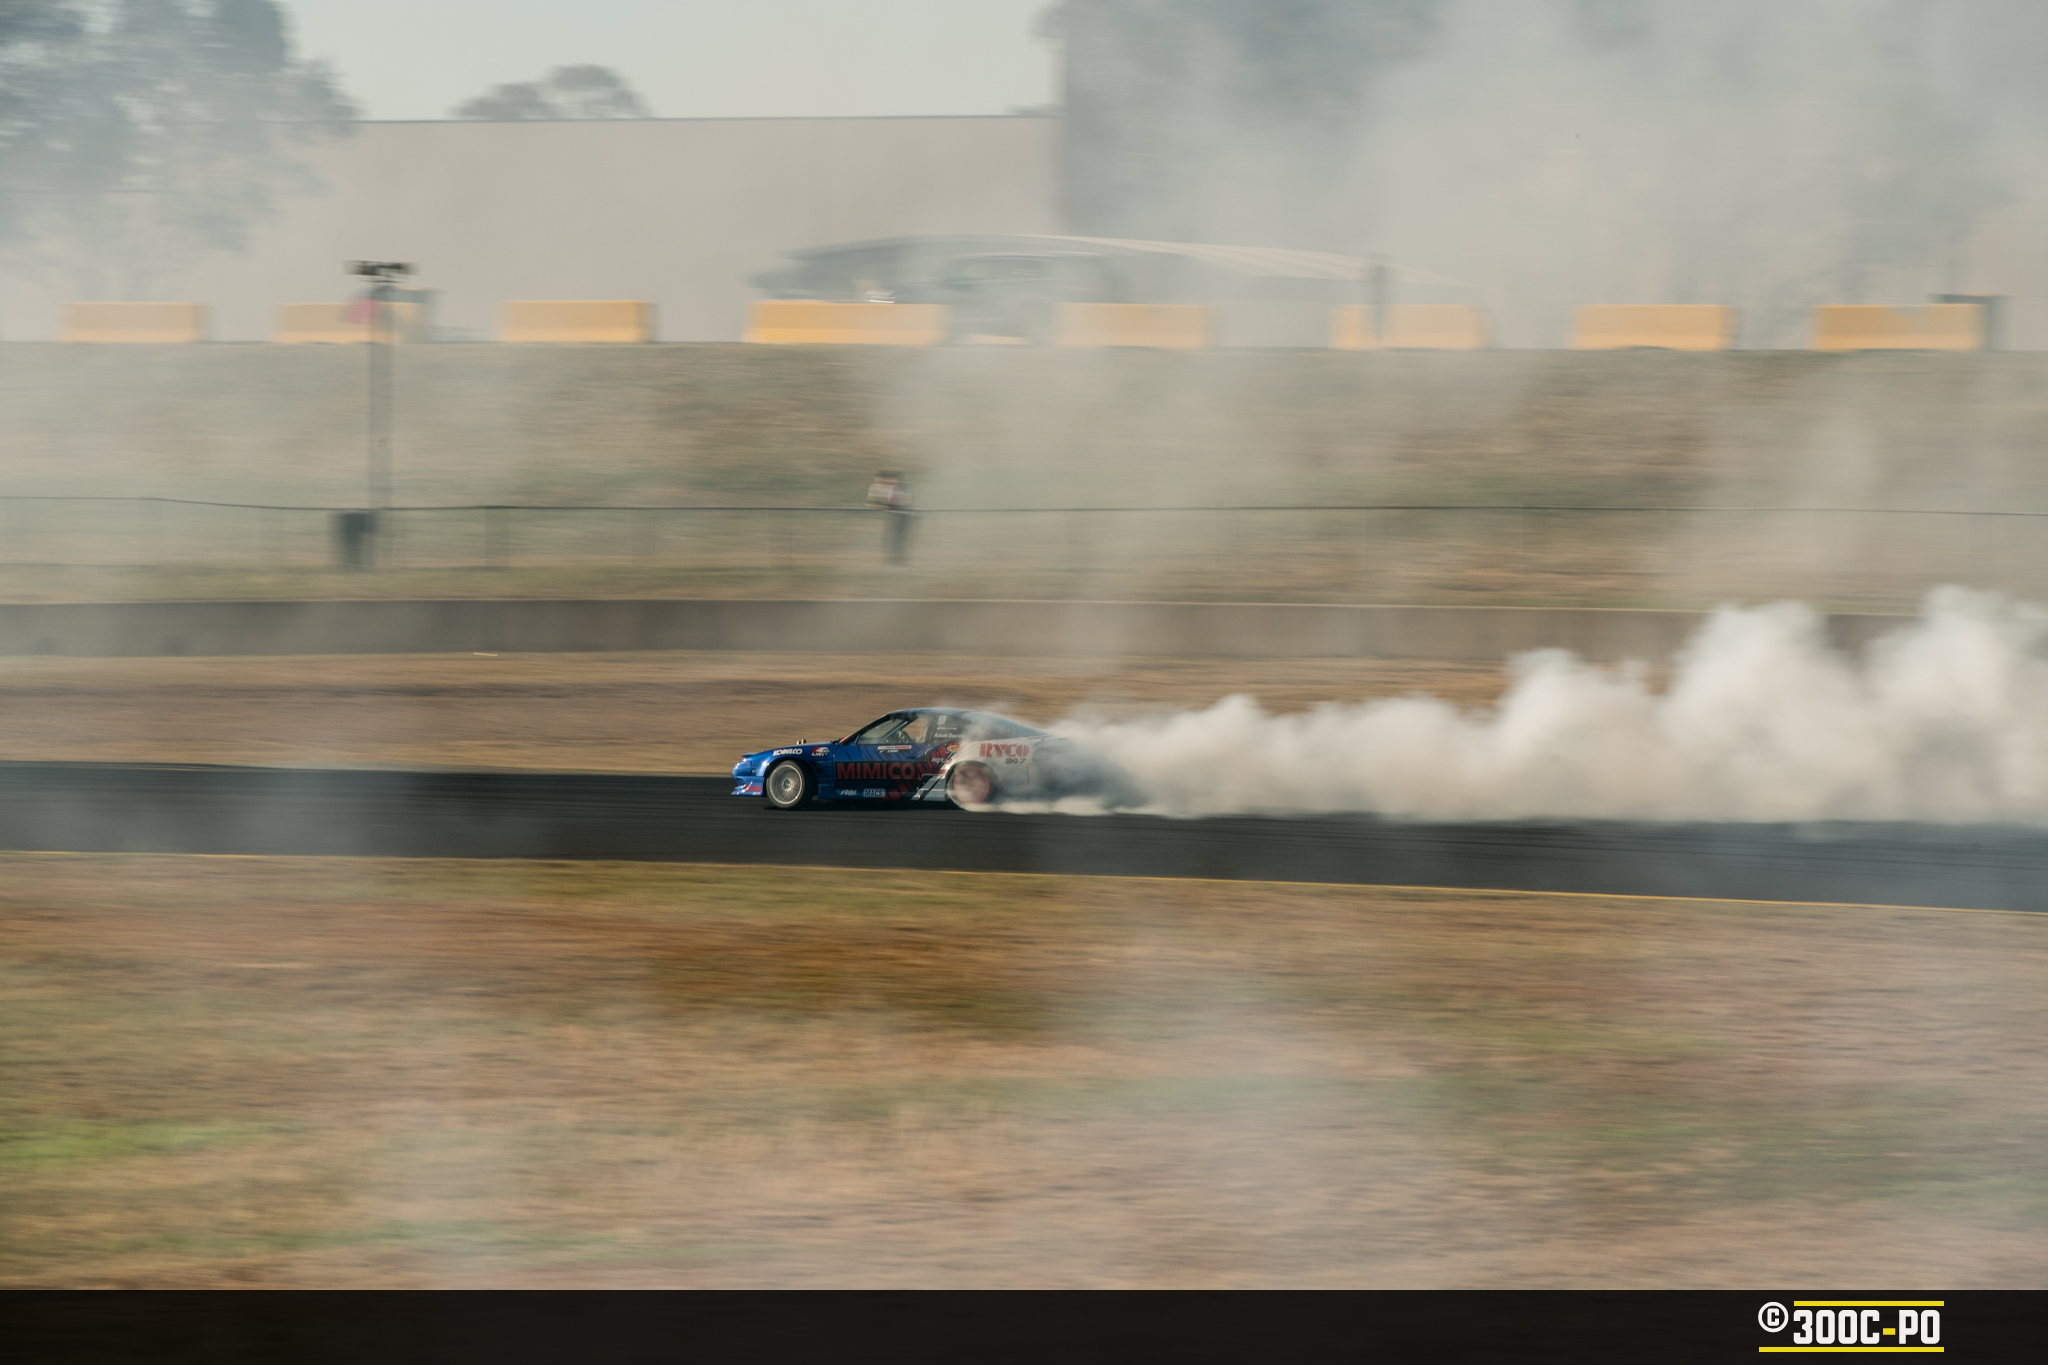 2017-10-12 - WTAC 2017 Test Day 085